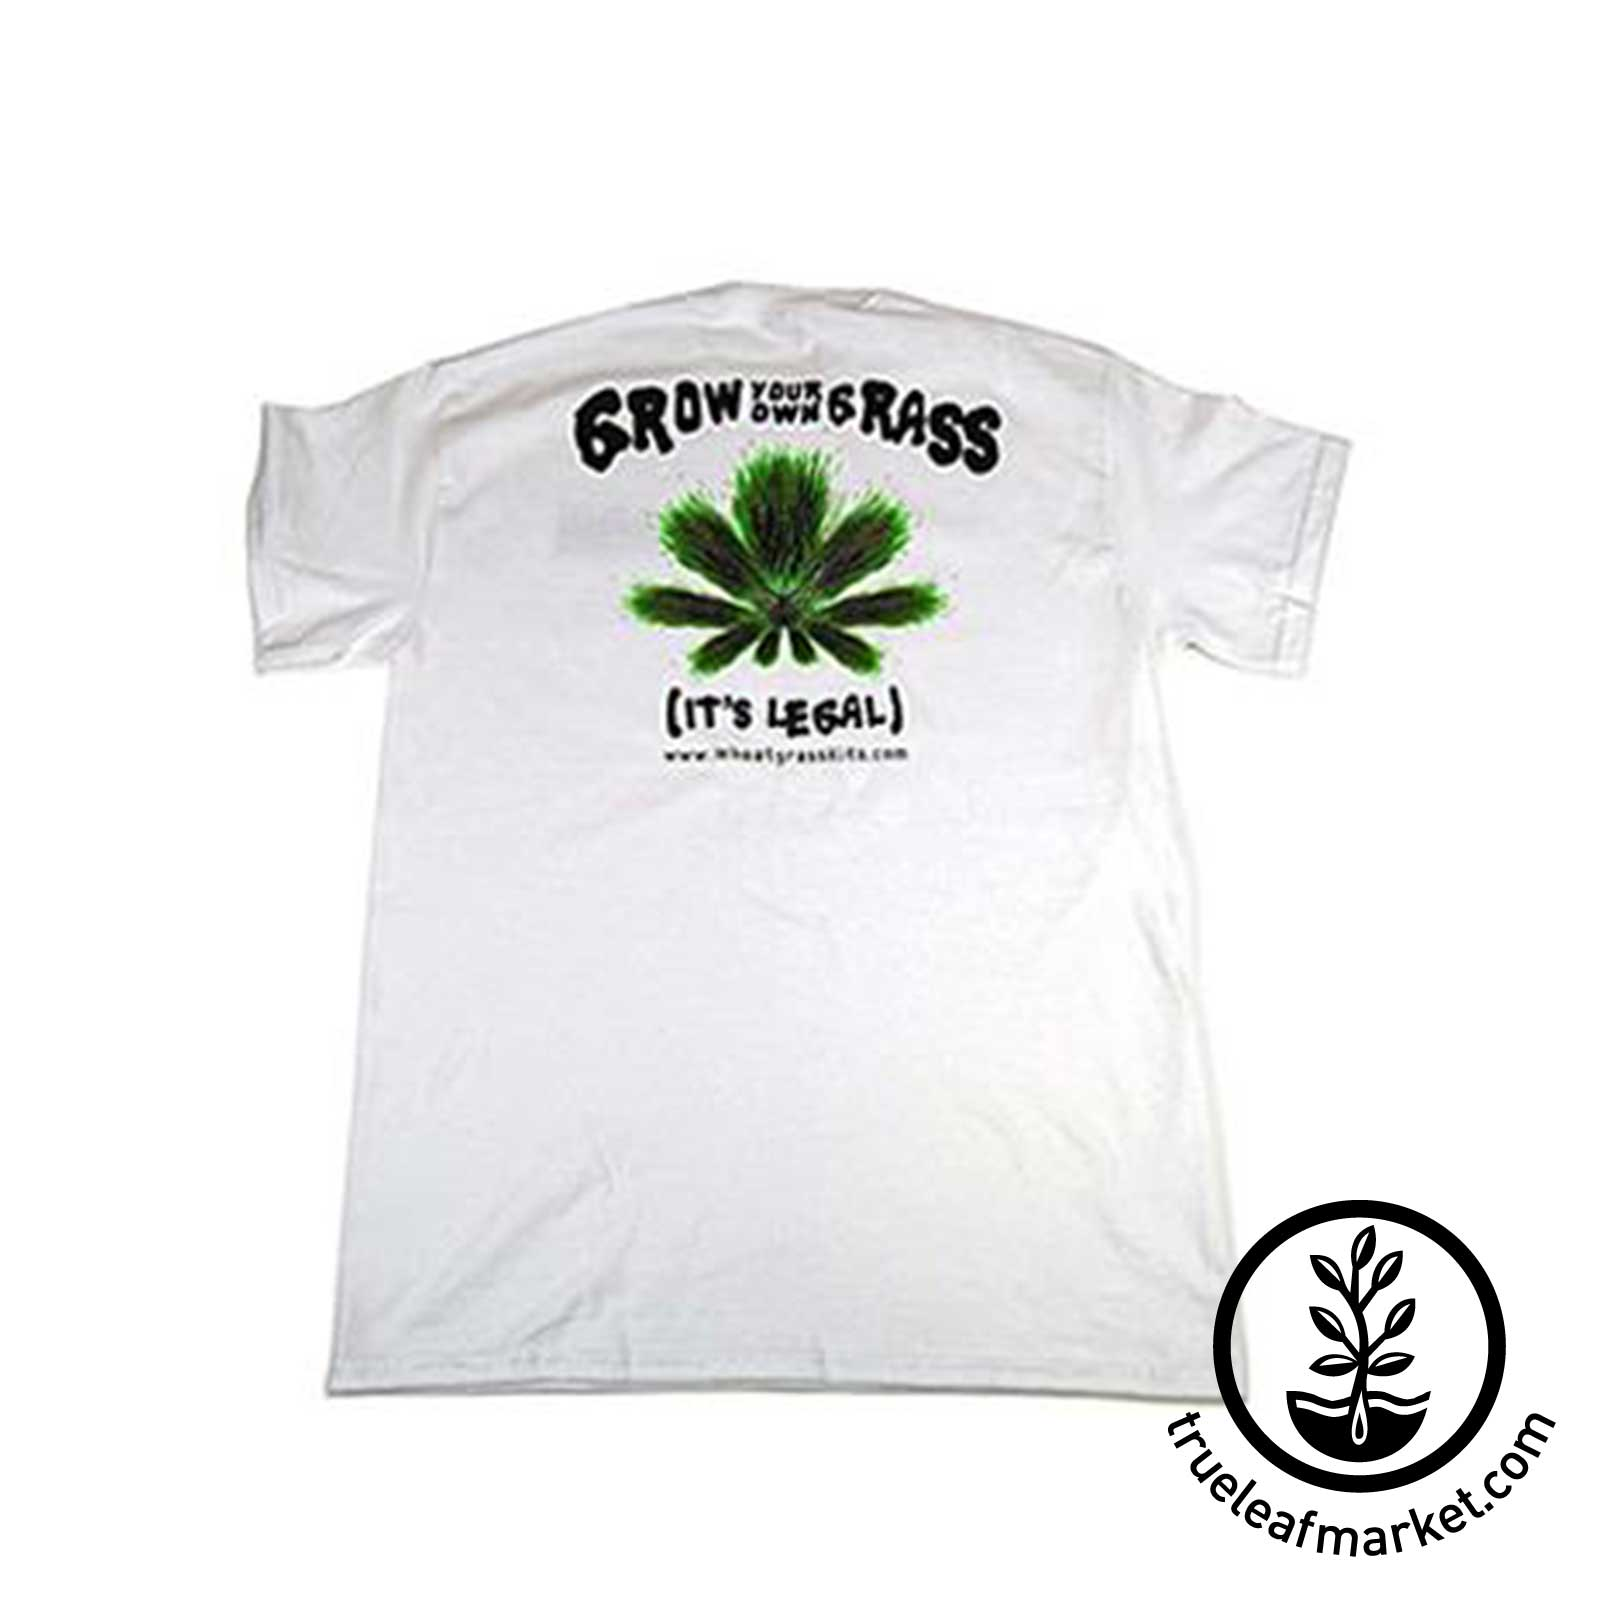 T-Shirts: Wheatgrass Themed wheat grass t-shirt, funny wheatgrass, wheat grass clothes, wheatgrass clothes